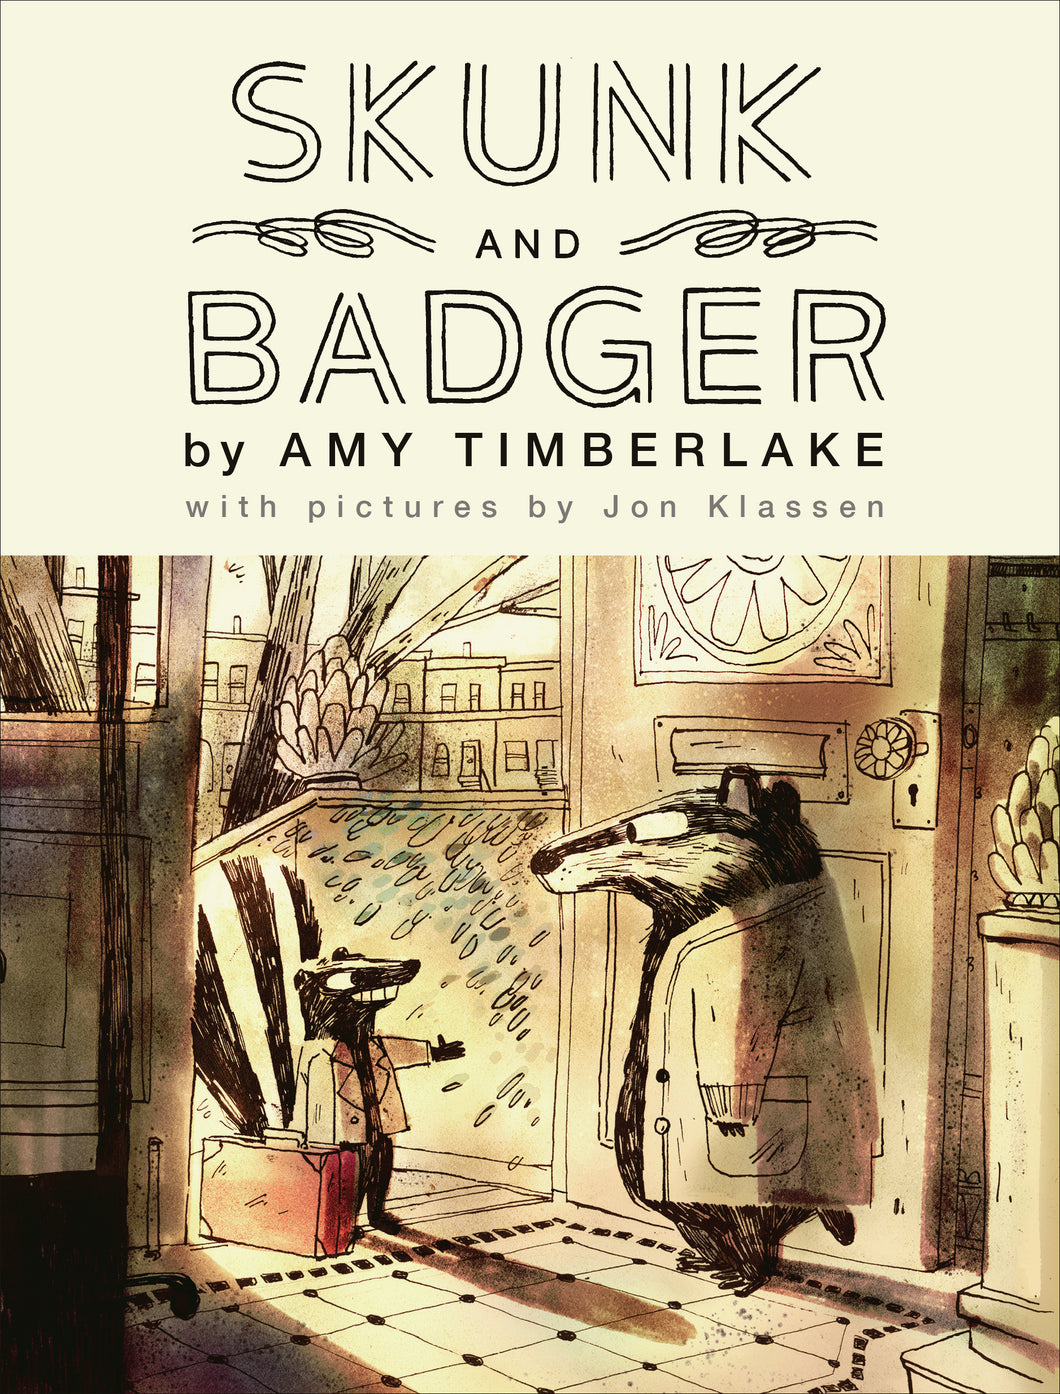 Skunk & Badger by Amy Timberlake